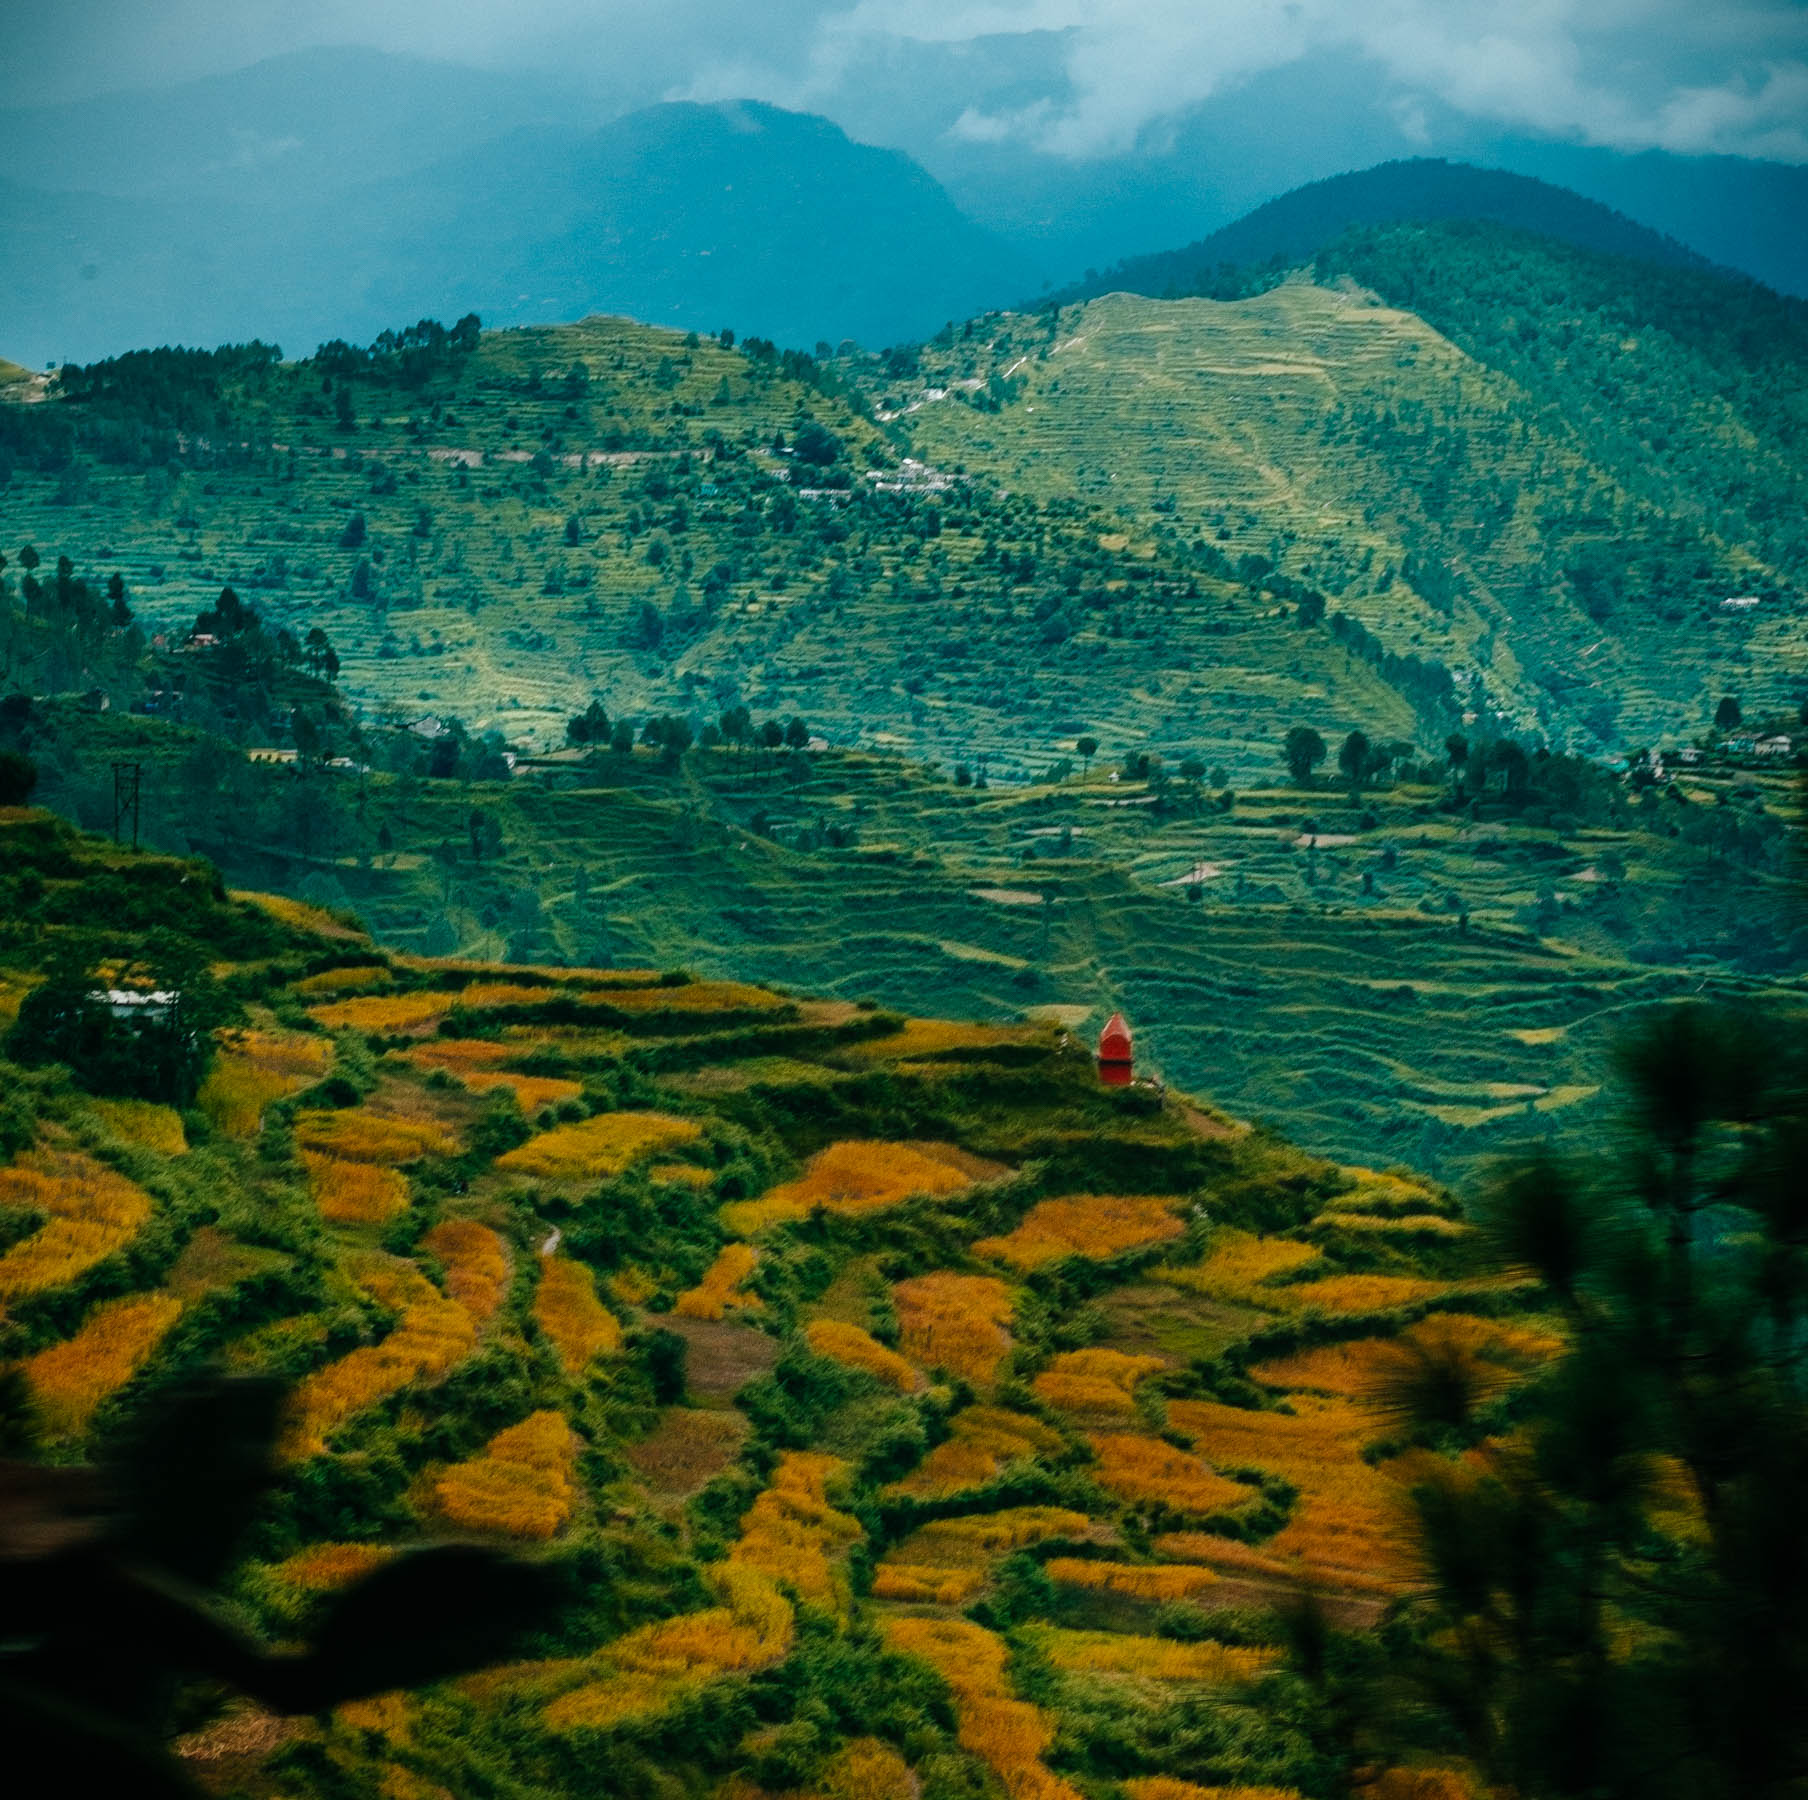 Ranikhet, Uttarakhand, EyesForDestinations, EyesForIndia, EyesForRanikhet, EyesForUttarakhand, NainaxRanikhet, Travel Photographer, Destination Photographer, Travel Photography, Destination Photography, Resort, Hospitality, Lifestyle, Travel Blogger, Lifestyle Blogger, Vacation, Road Trip, India, Professional Photographer, Luxury, Lifestyle, Blogger, Feature, Story, Landscape Photographs, Landscape Photographer India, Landscape Photographer